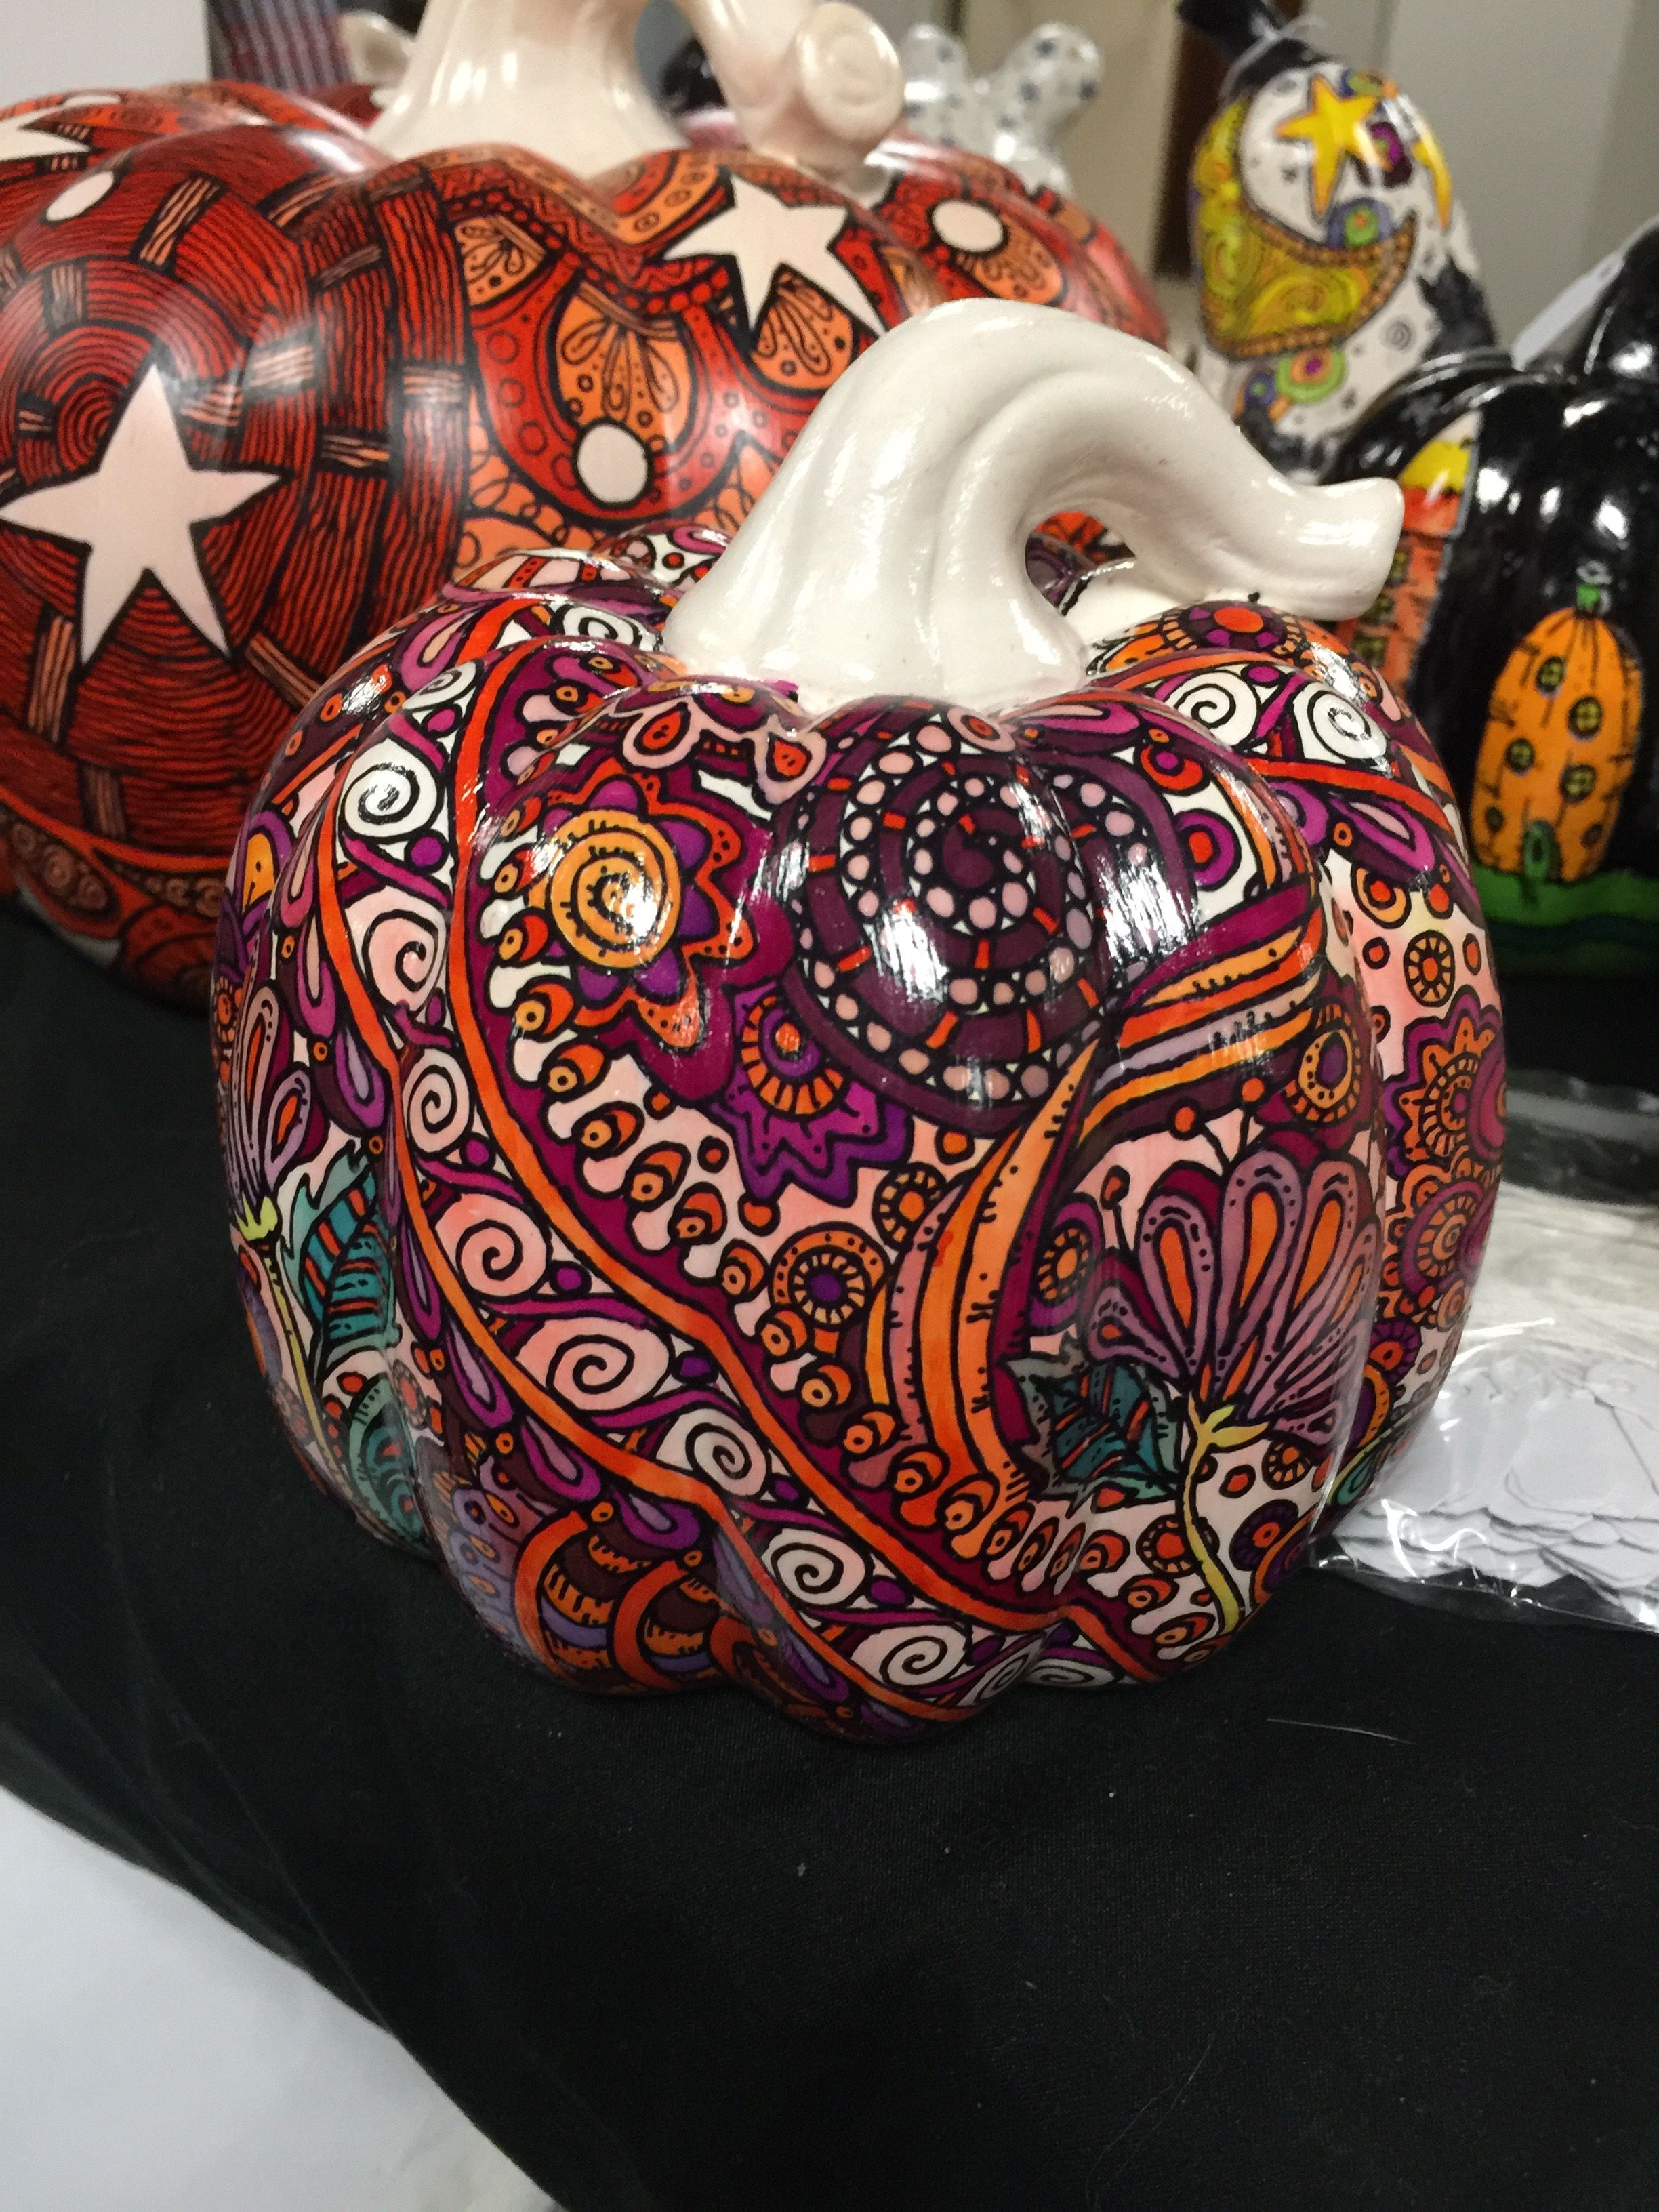 Boho Halloween decorations. Boho Halloween Pumpkins. No carve pumpkin ideas. Pumpkin painting ideas. Pumpkin decorating ideas pinterest. creative pumpkin decorating ideas. pumpkin decorations for fall. pumpkin decorating contest ideas halloween pumpkin decorating ideas. mini pumpkin decorating ideas. boho halloween decor.